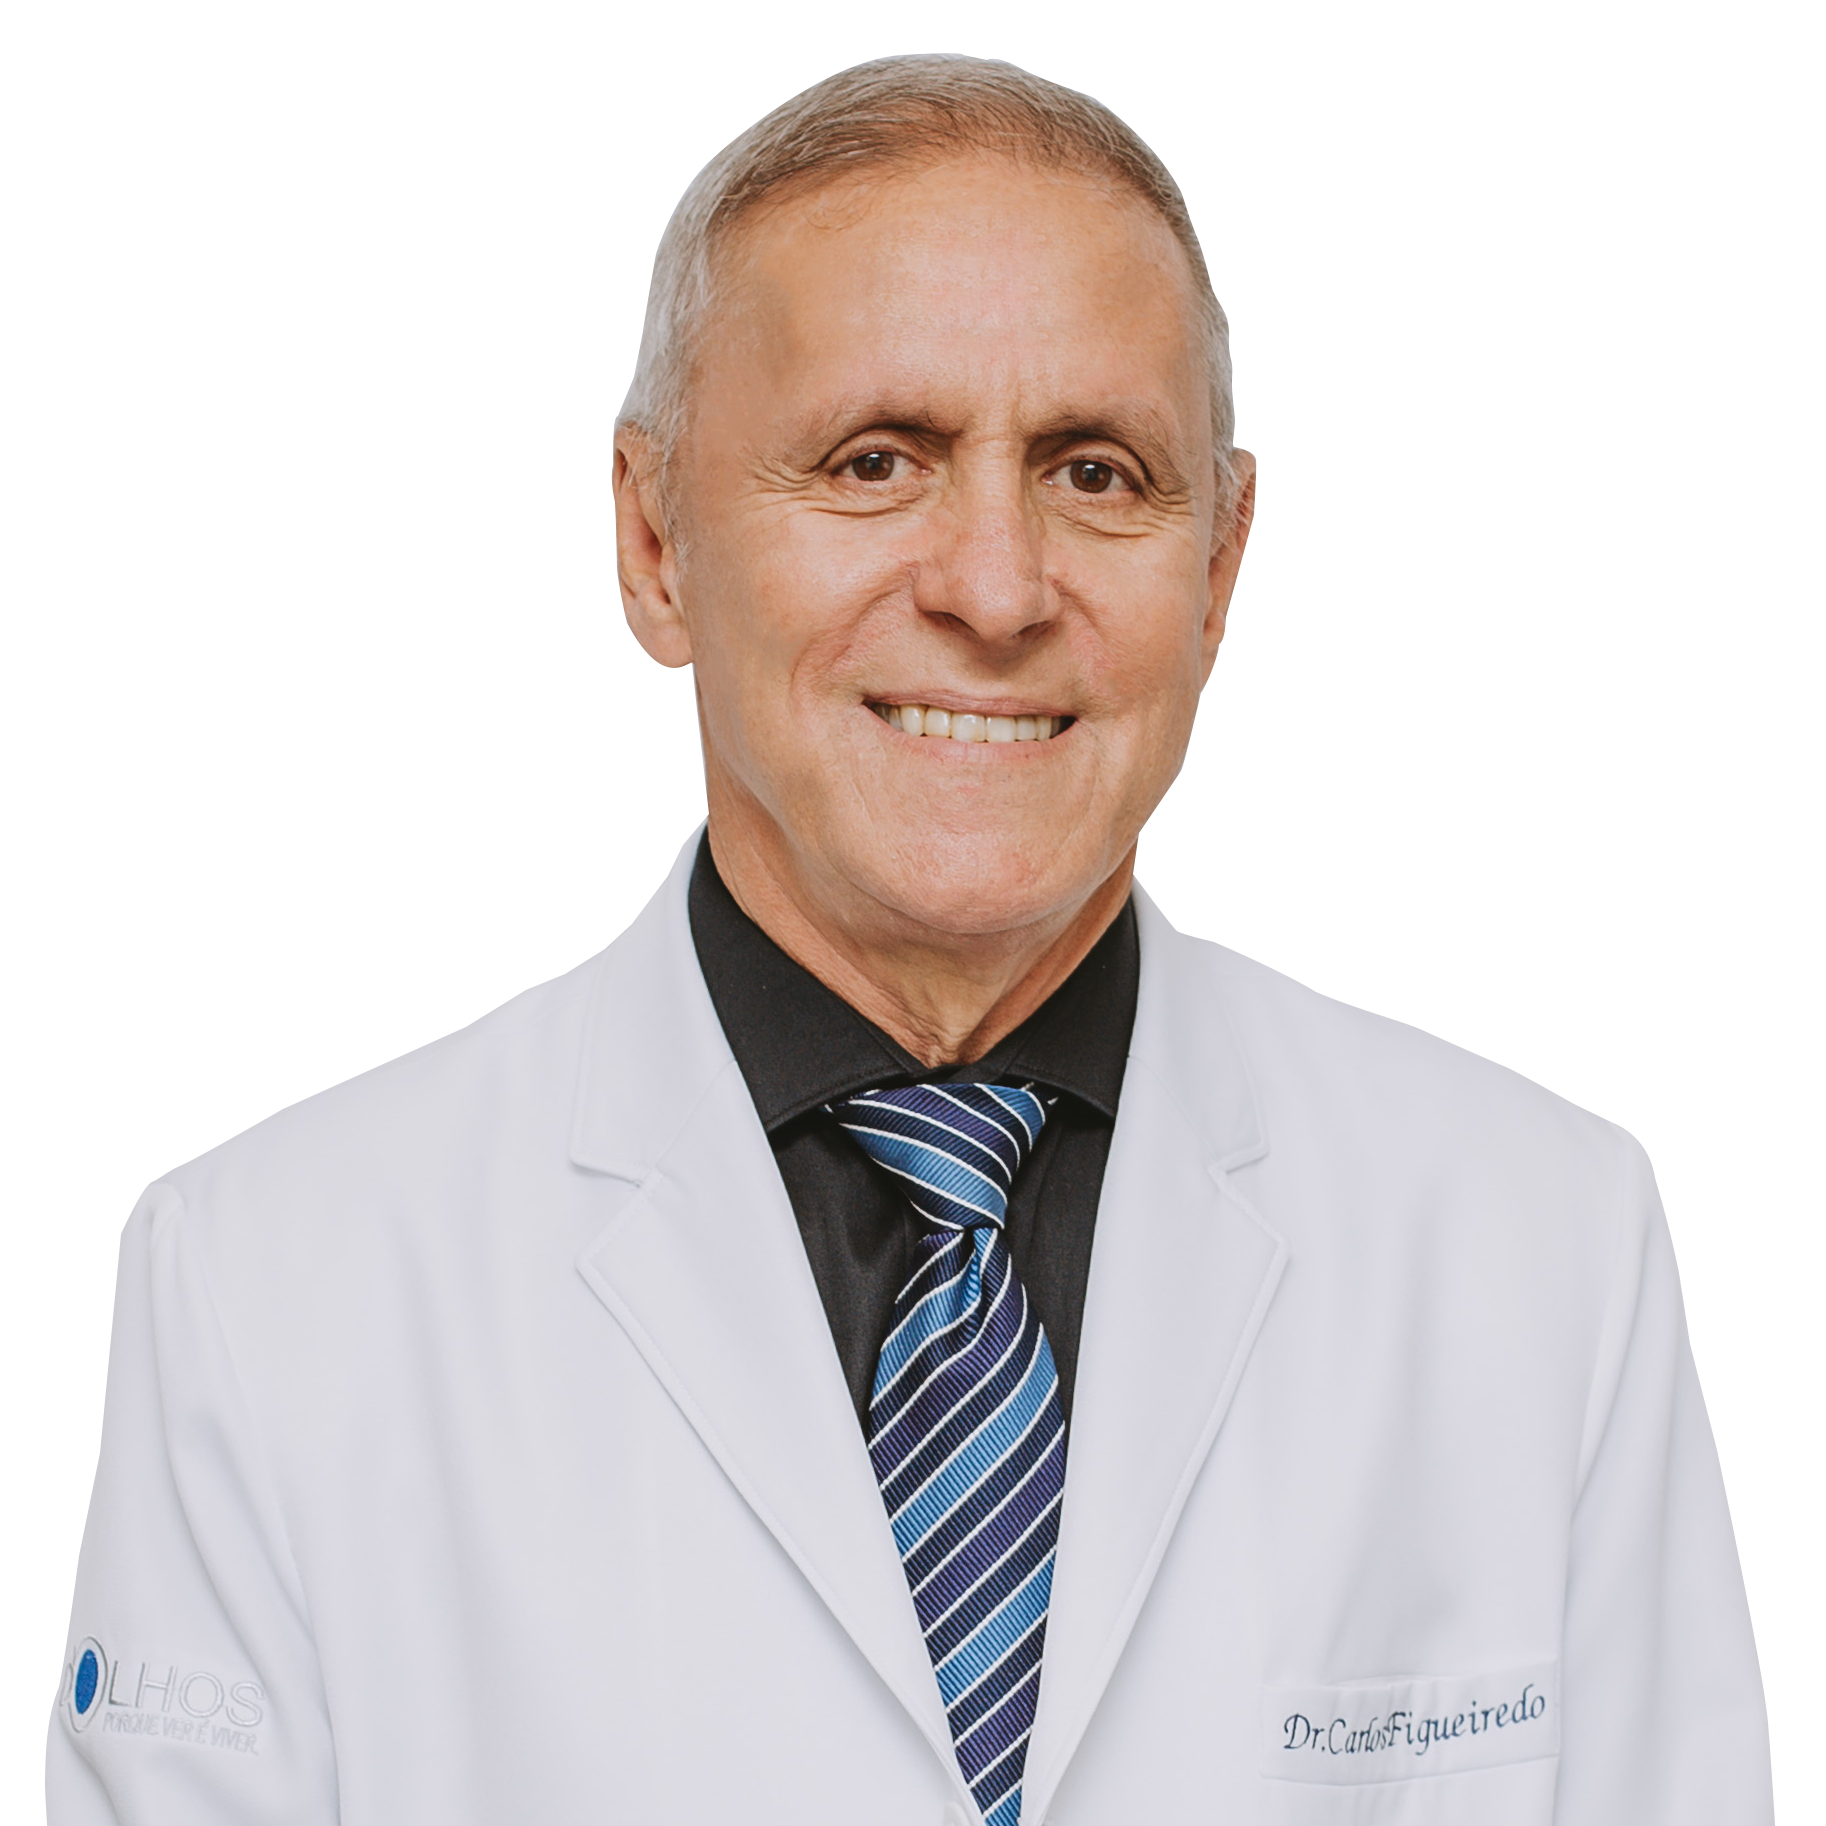 Dr. Carlos G. Figueiredo - D'Olhos Hospital Dia